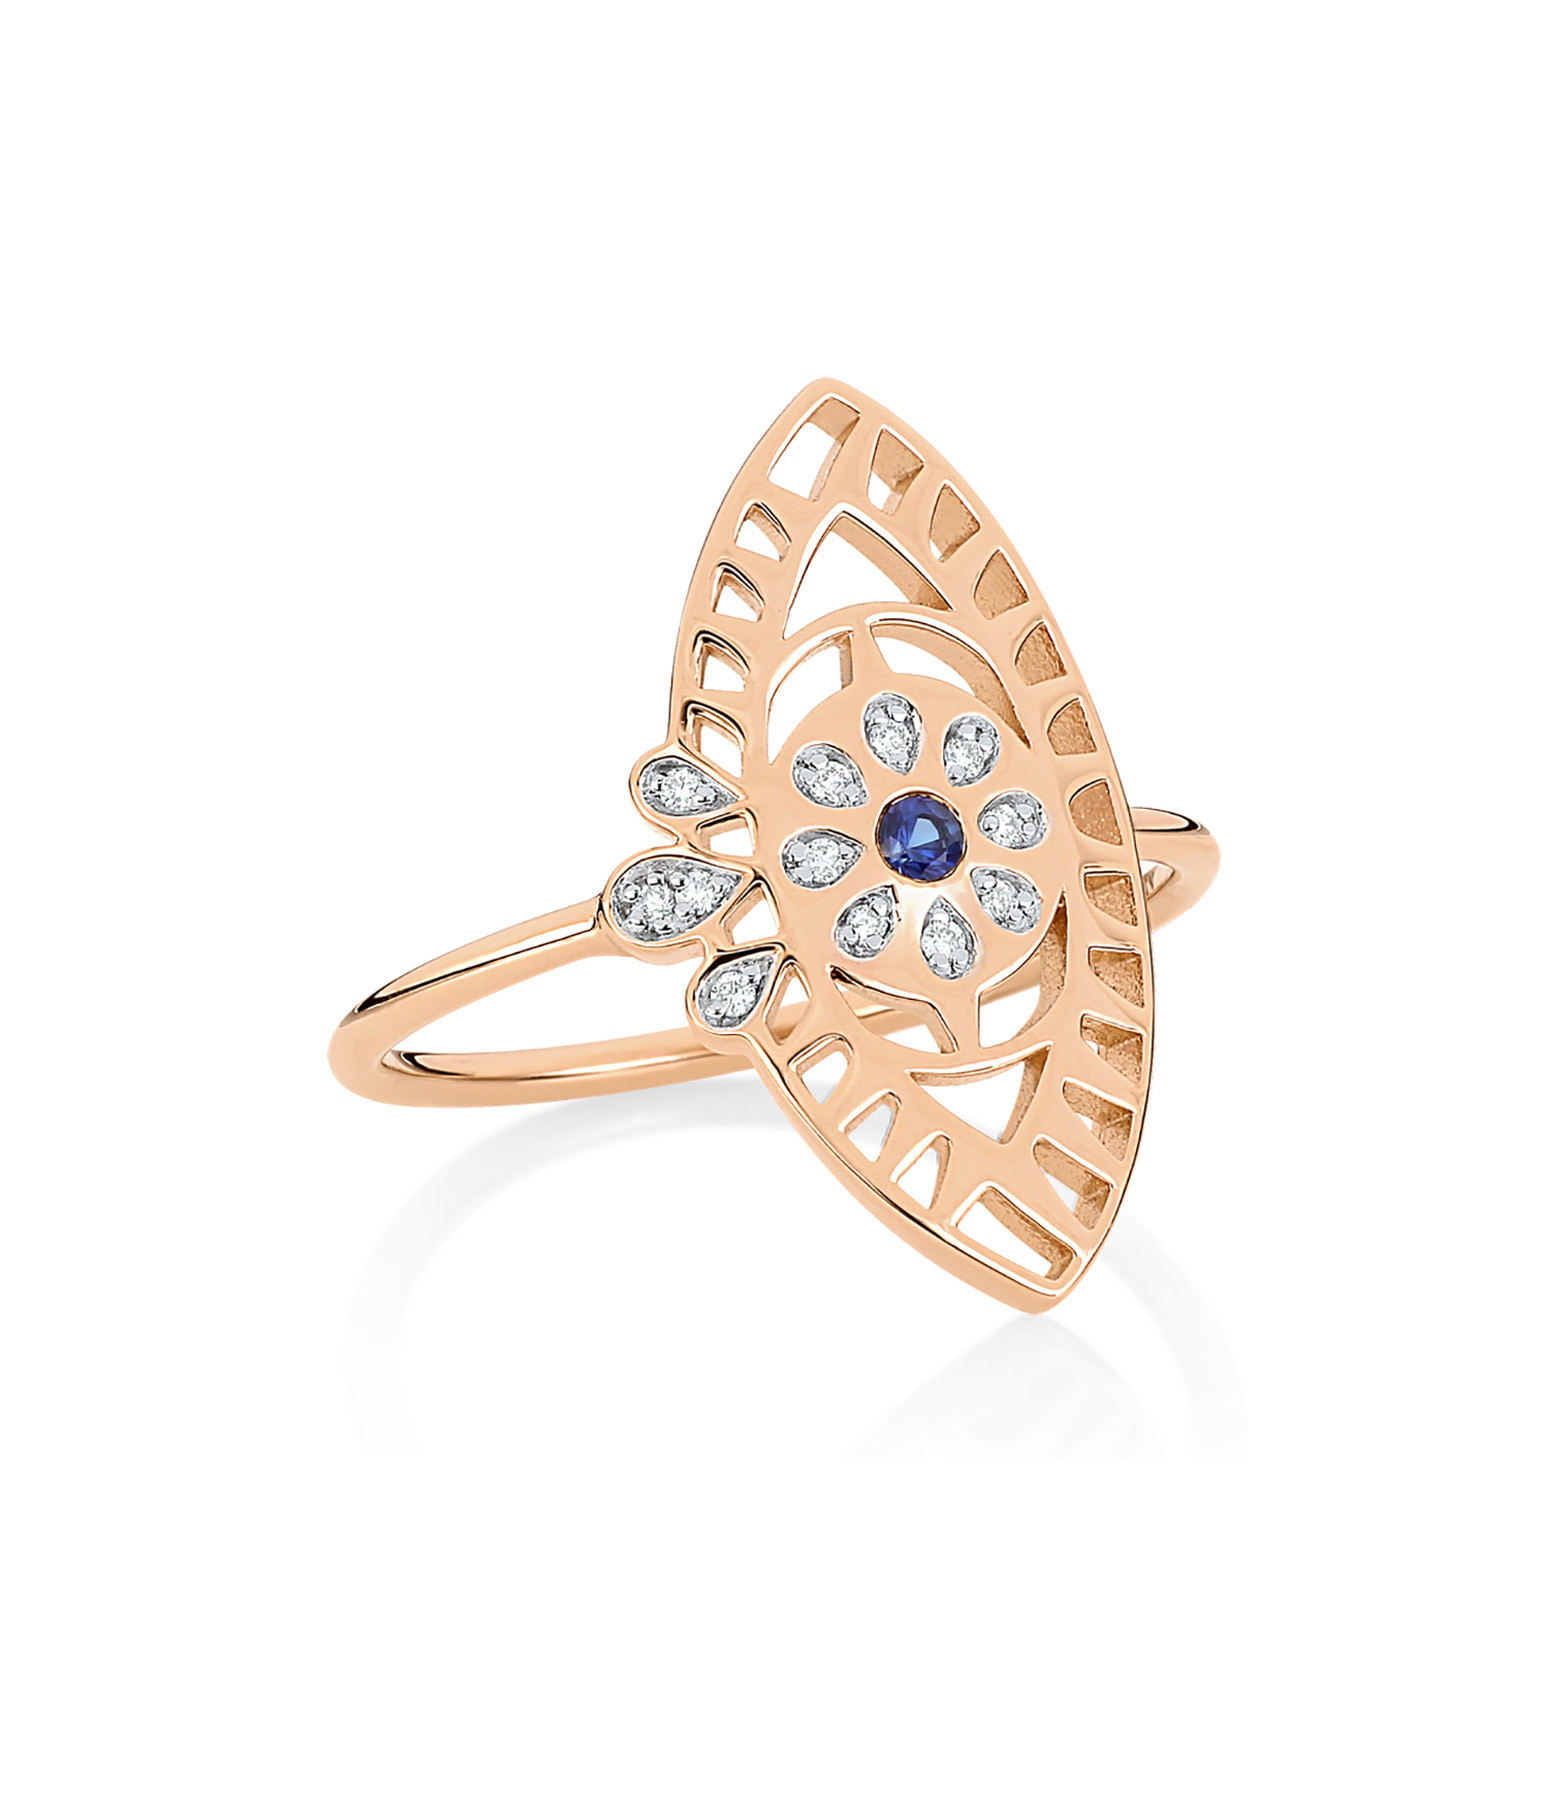 GINETTE NY - Bague Ajna Large Saphir Diamants Or Rose